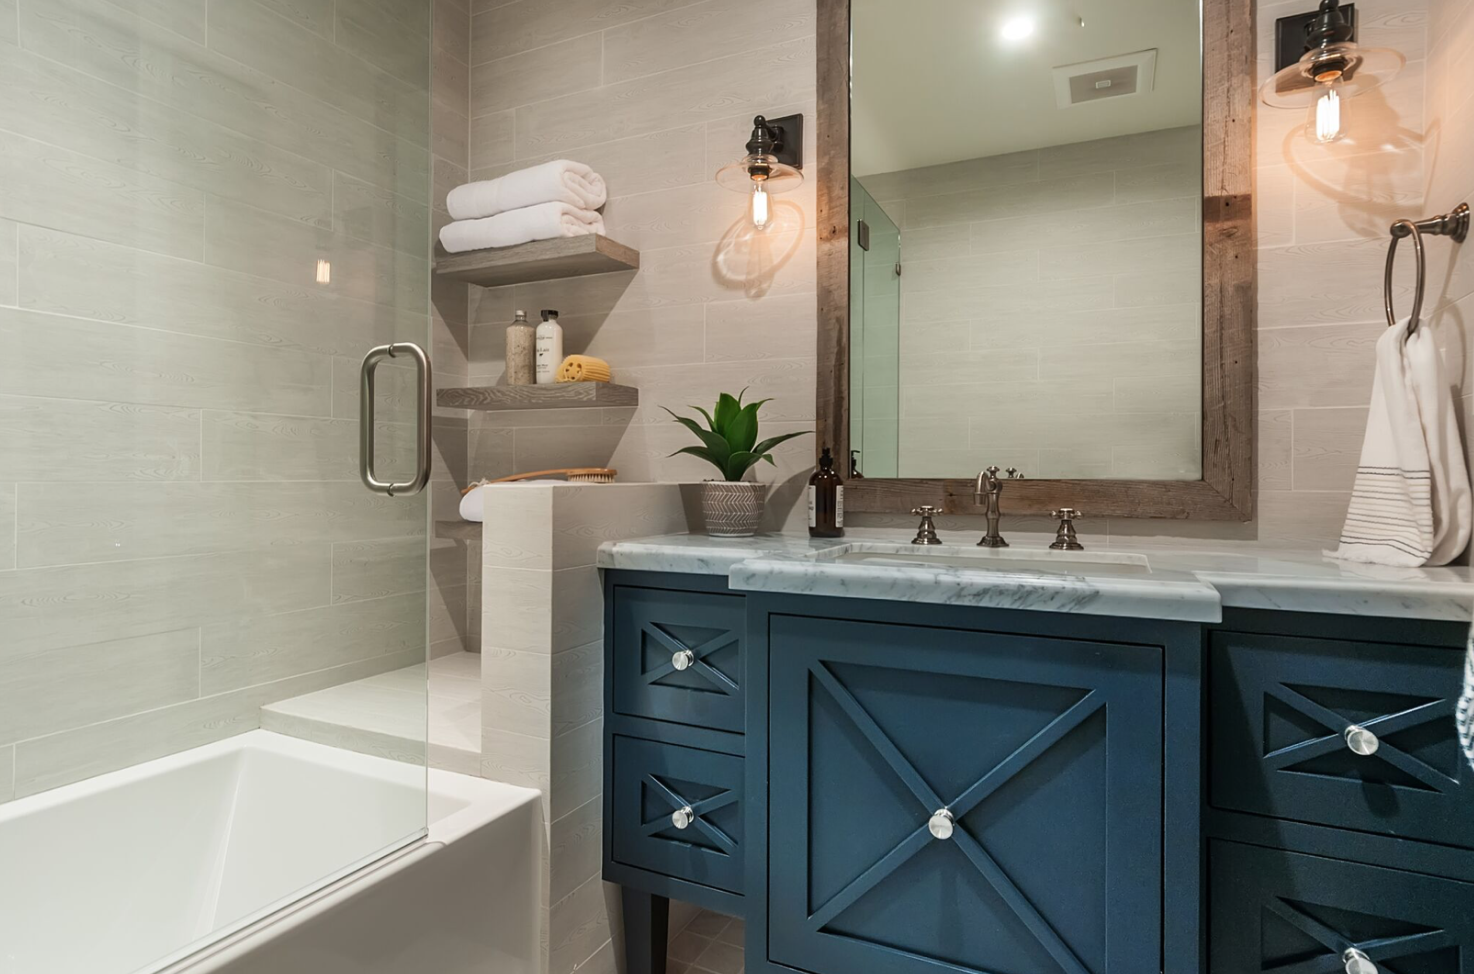 Throughout this home, the lighting & hardware in bathrooms accents the industrial design, an intrinsic feature of the modern farmhouse.